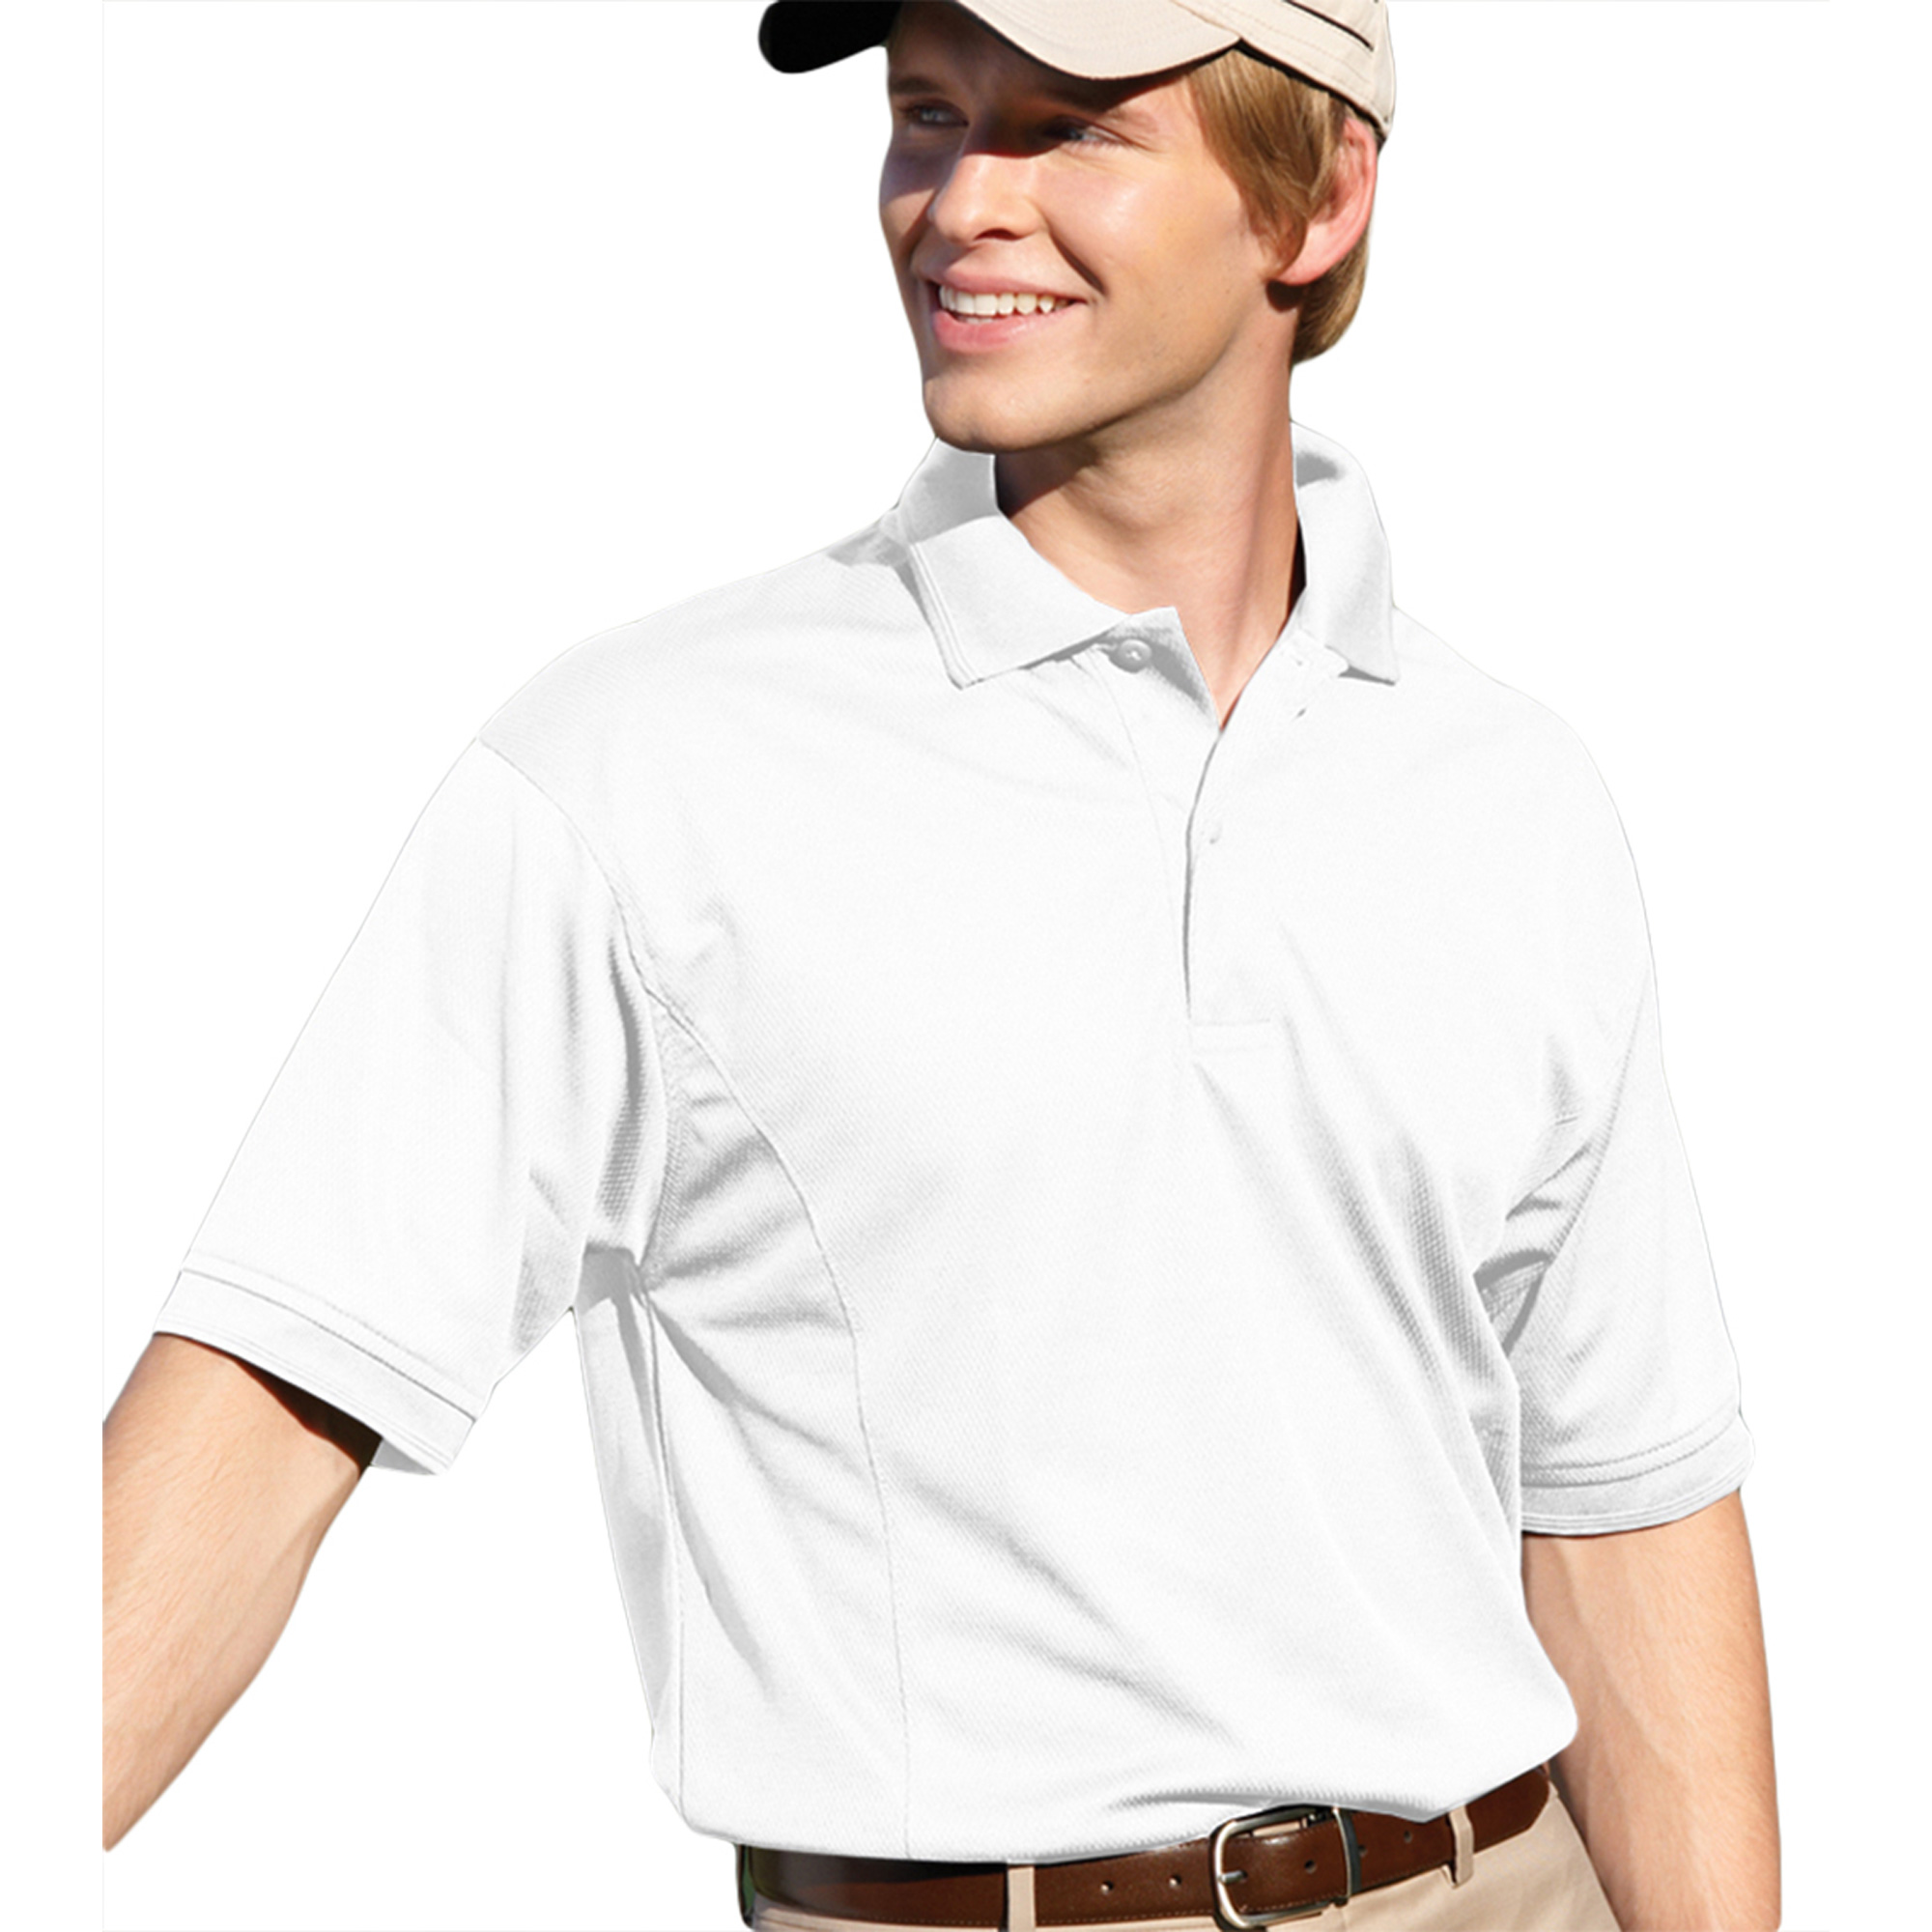 00820599181092 MENS PERFORMANCE GOLF SHIRT 2800 ROYAL S